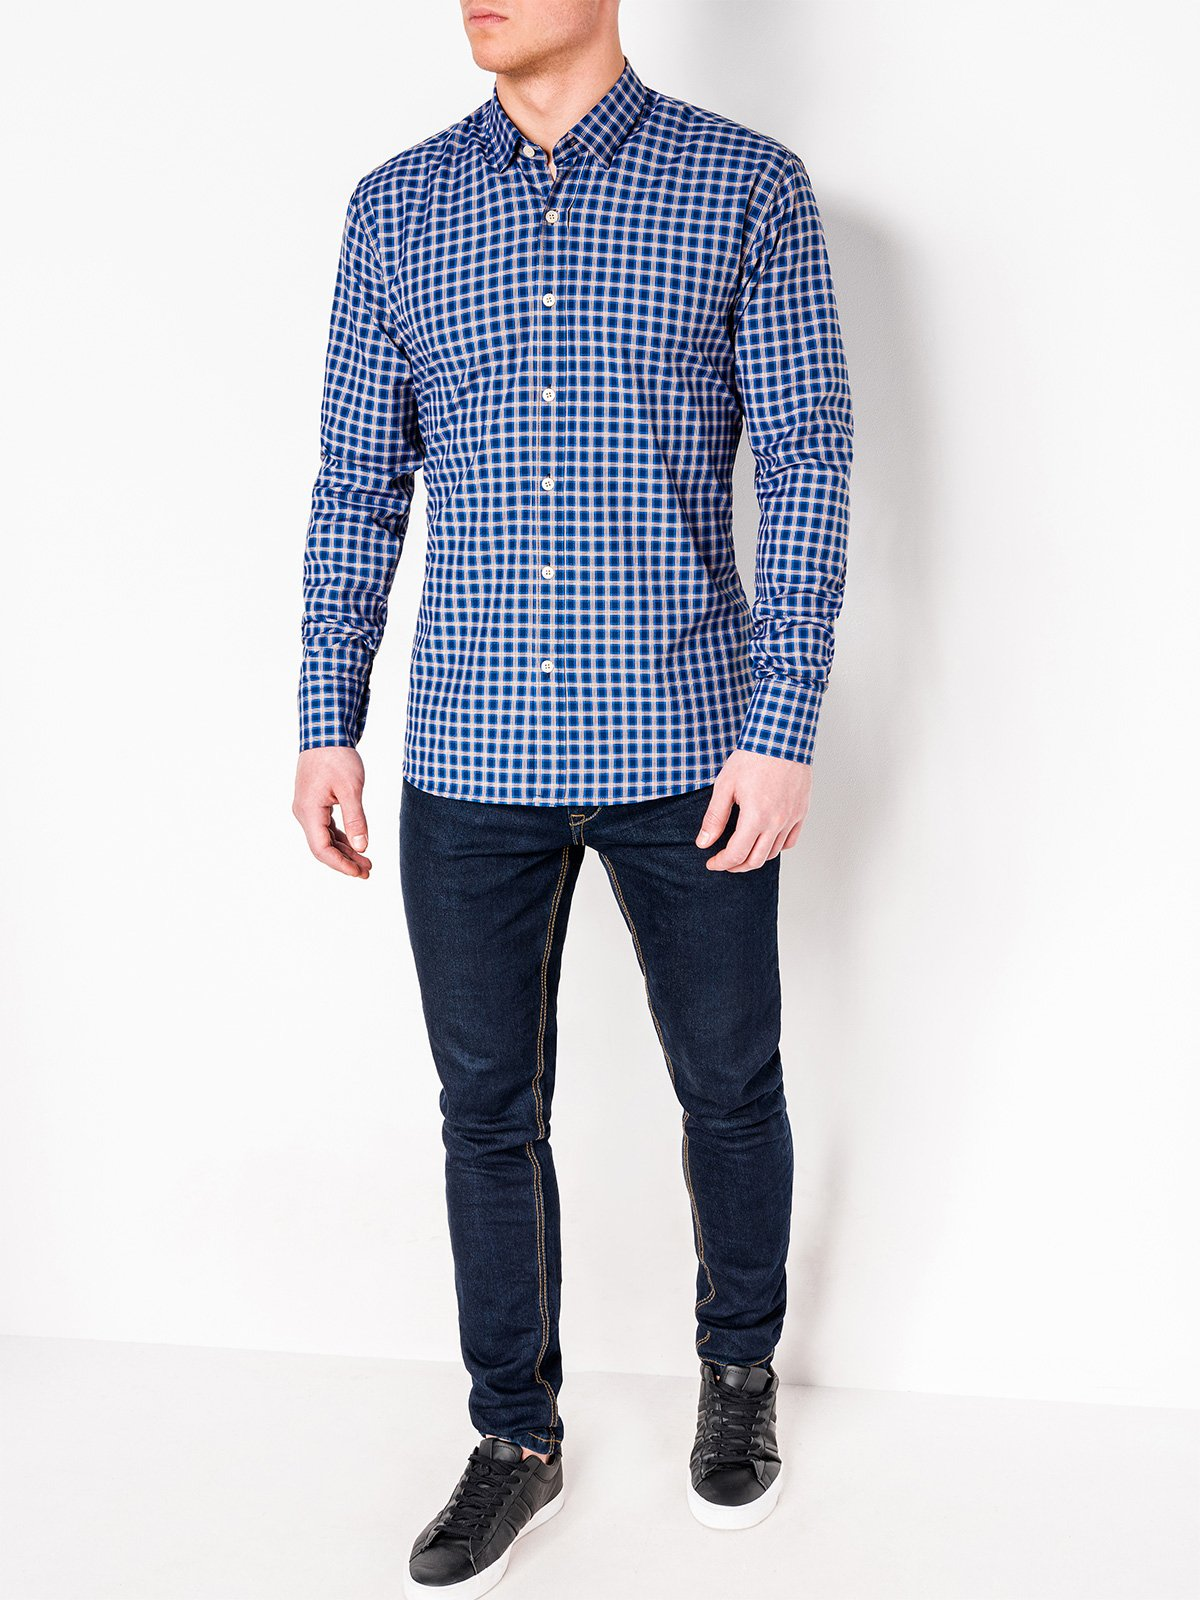 Ombre Clothing Men's check shirt with long sleeves K438